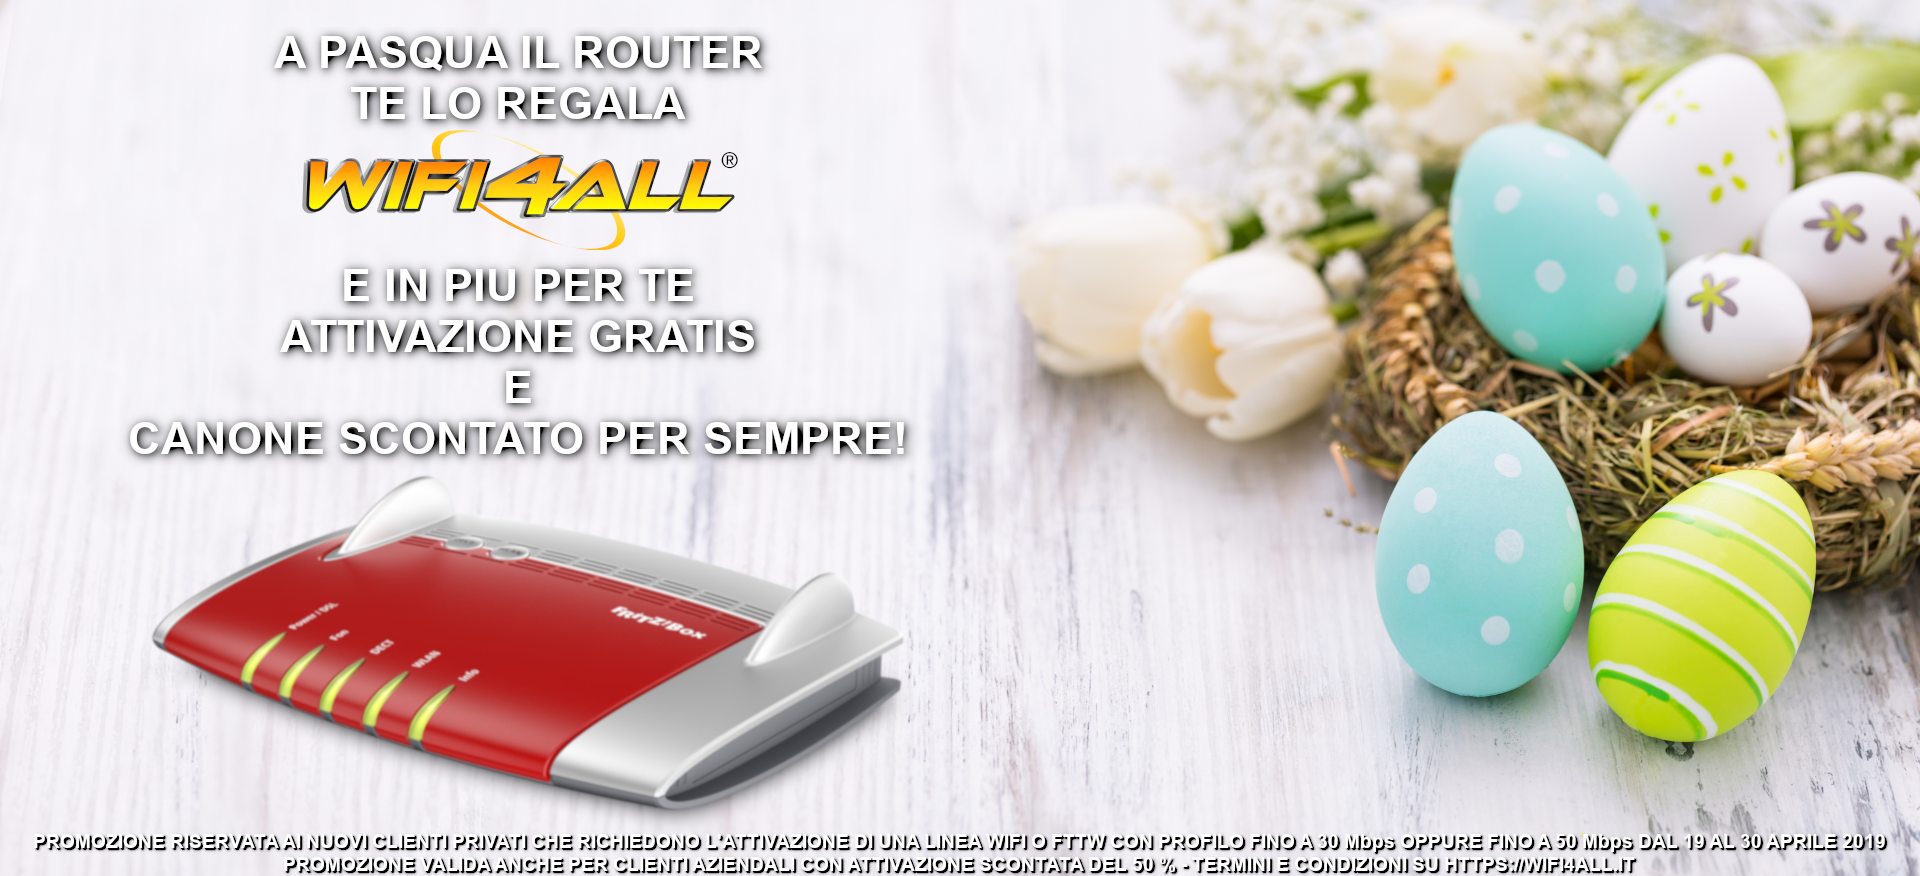 A Pasqua il router te lo regala Wifi4all